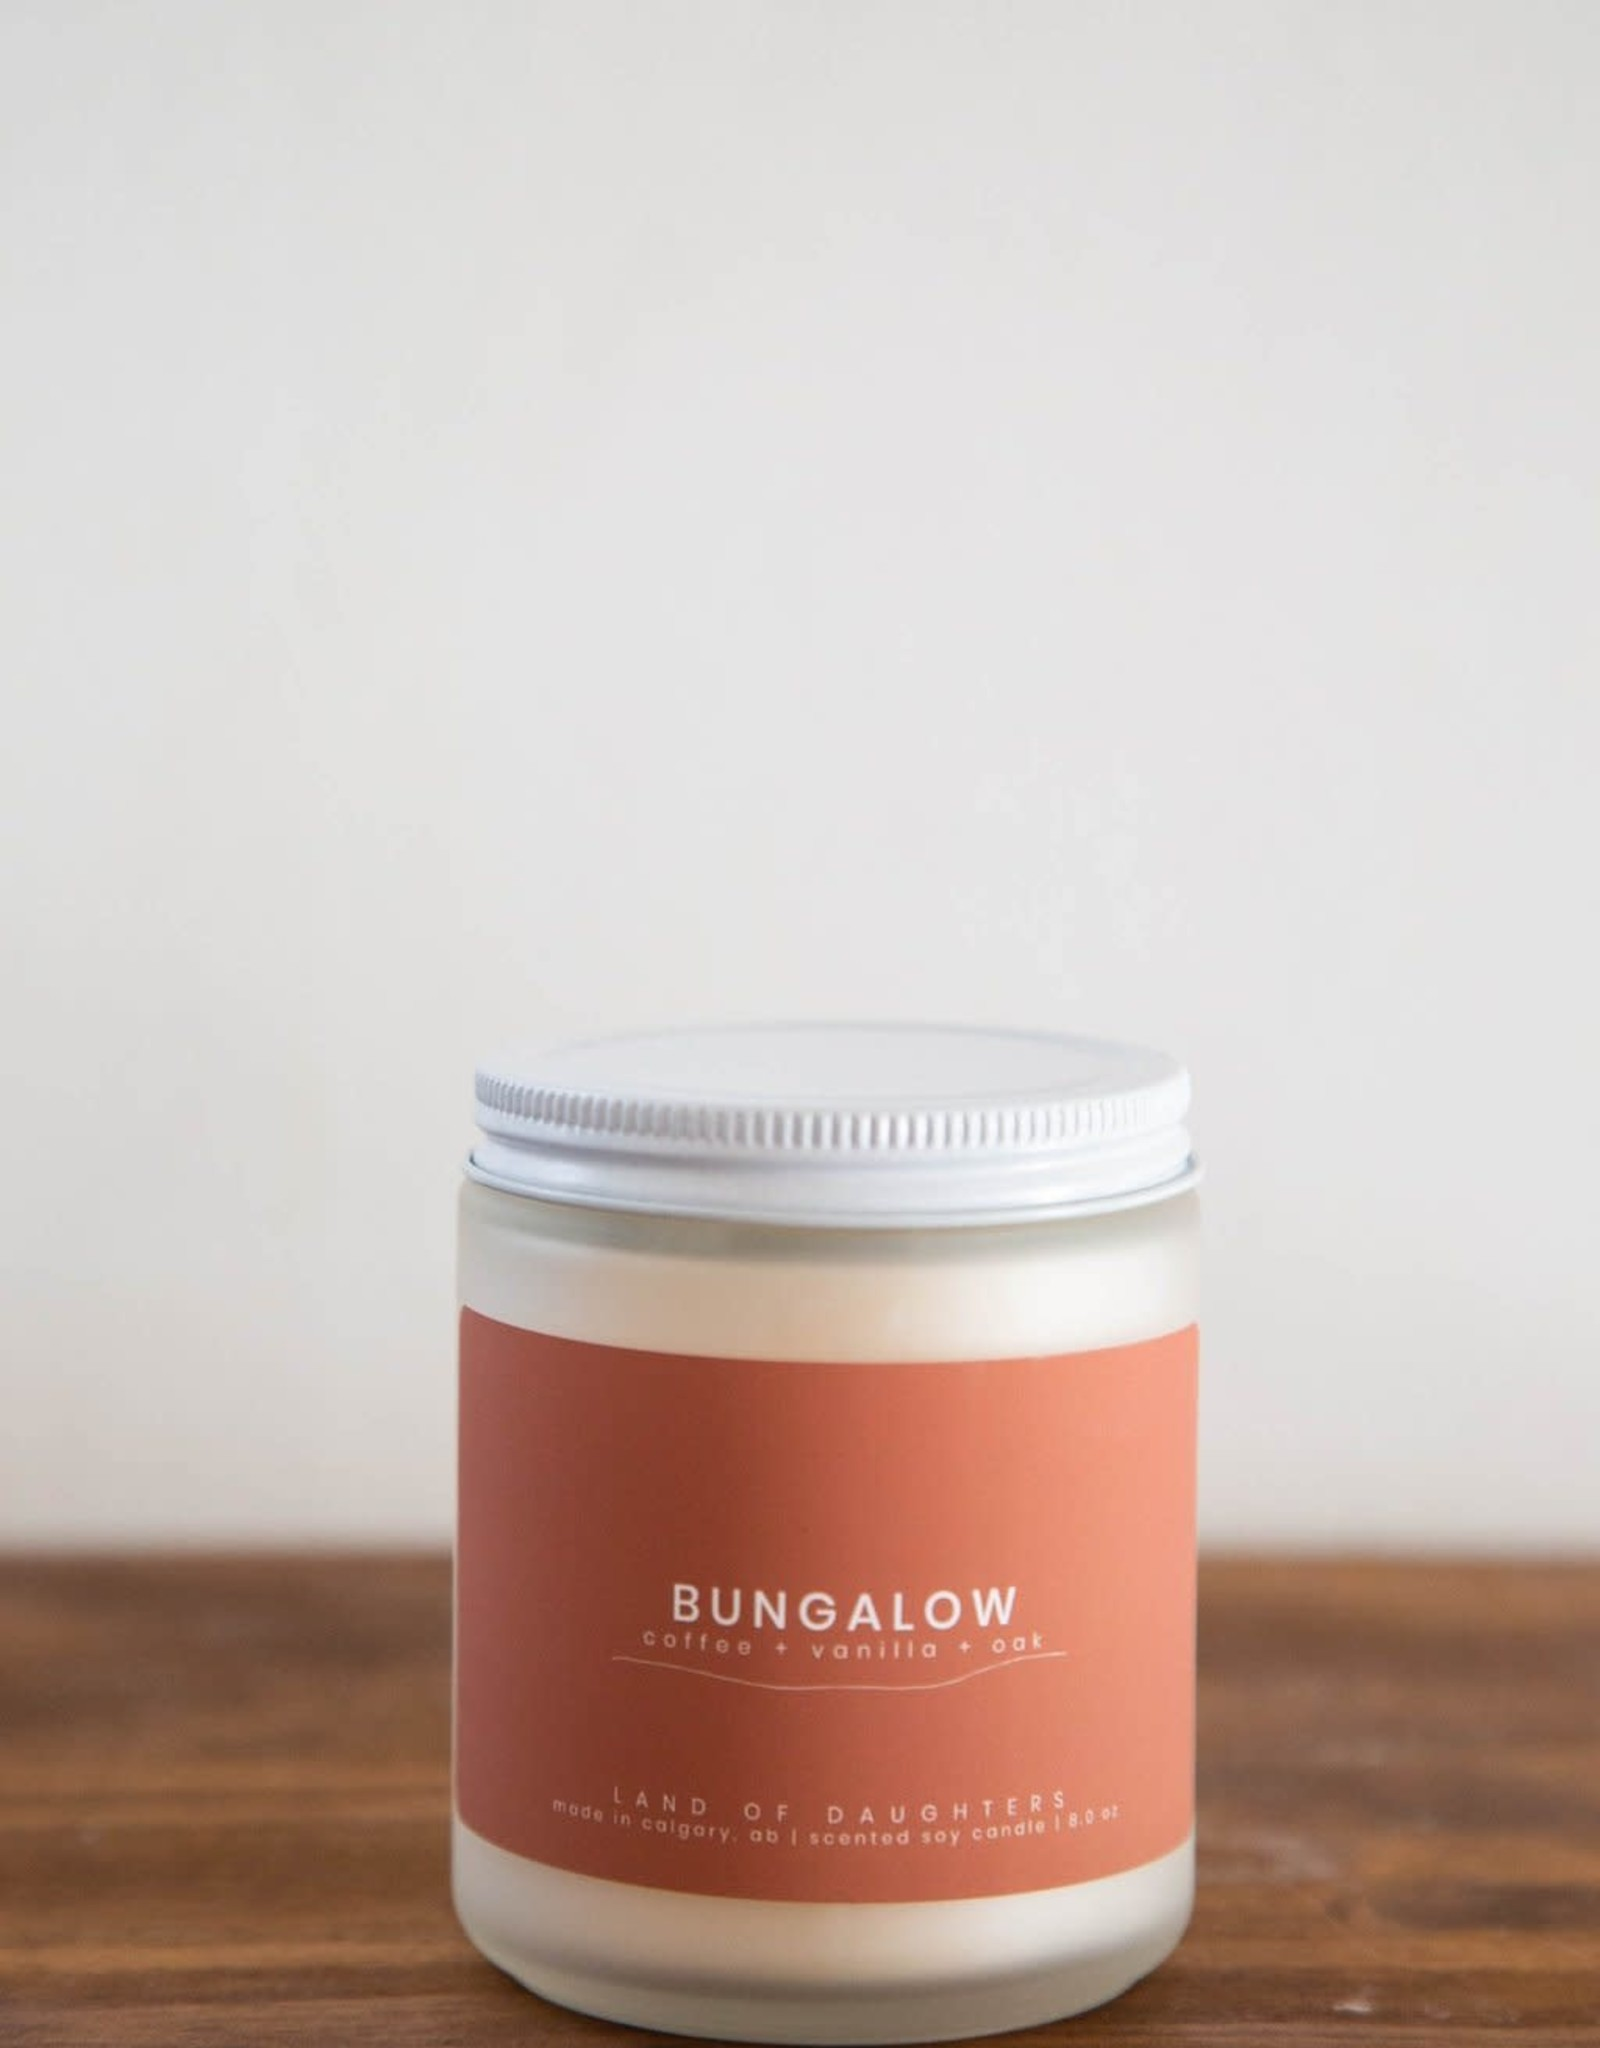 LAND of DAUGHTERS Bungalow CANDLE